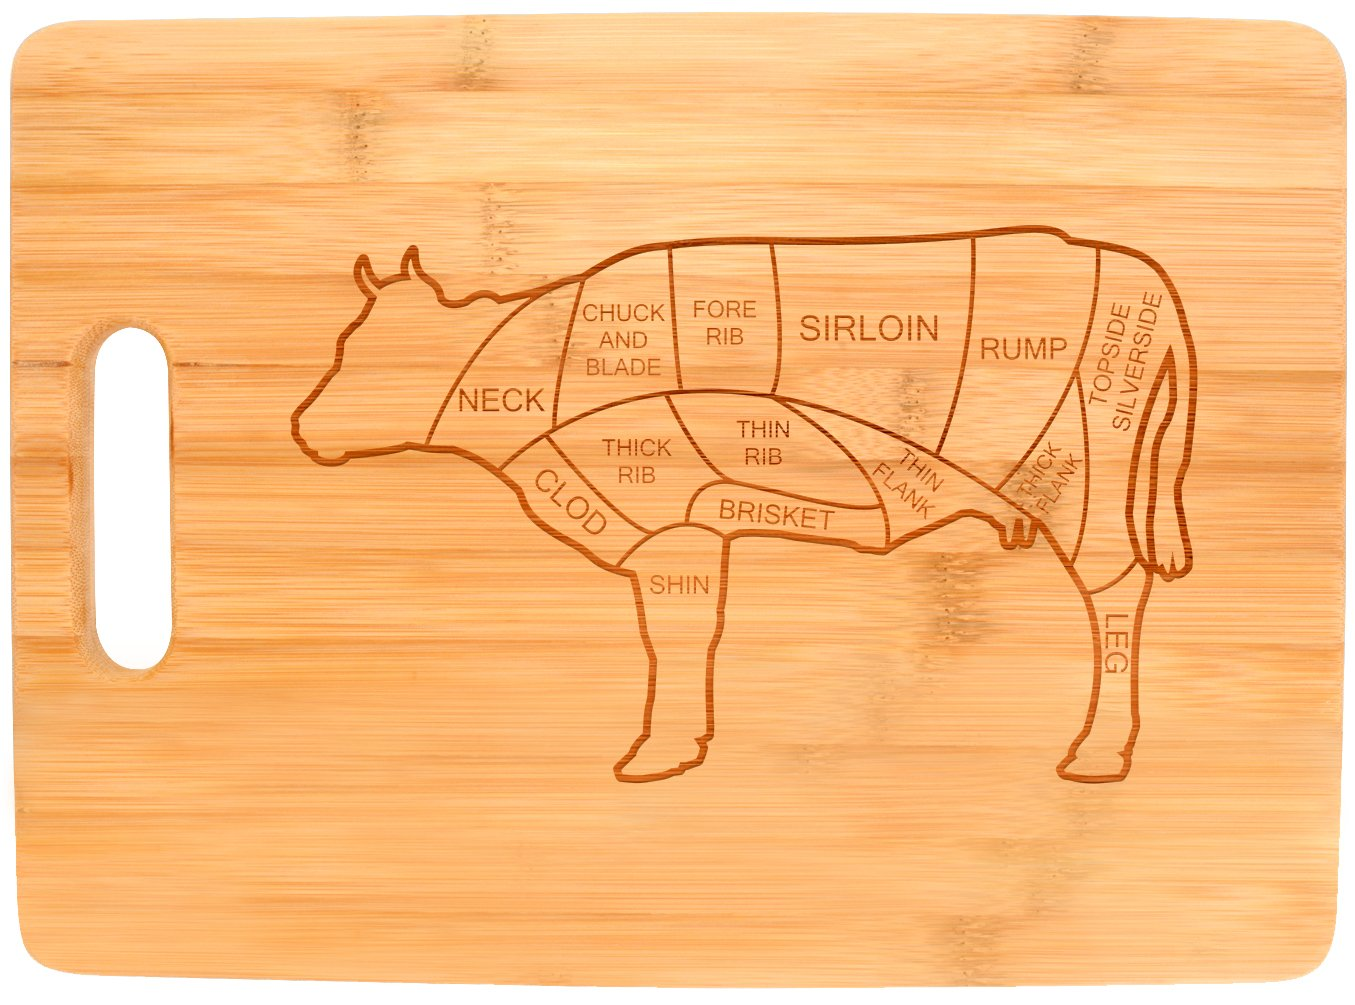 Beef Butcher Cuts Cow Kitchen Décor Barbecue BBQ Burgers Big Rectangle Bamboo Cutting Board Bamboo